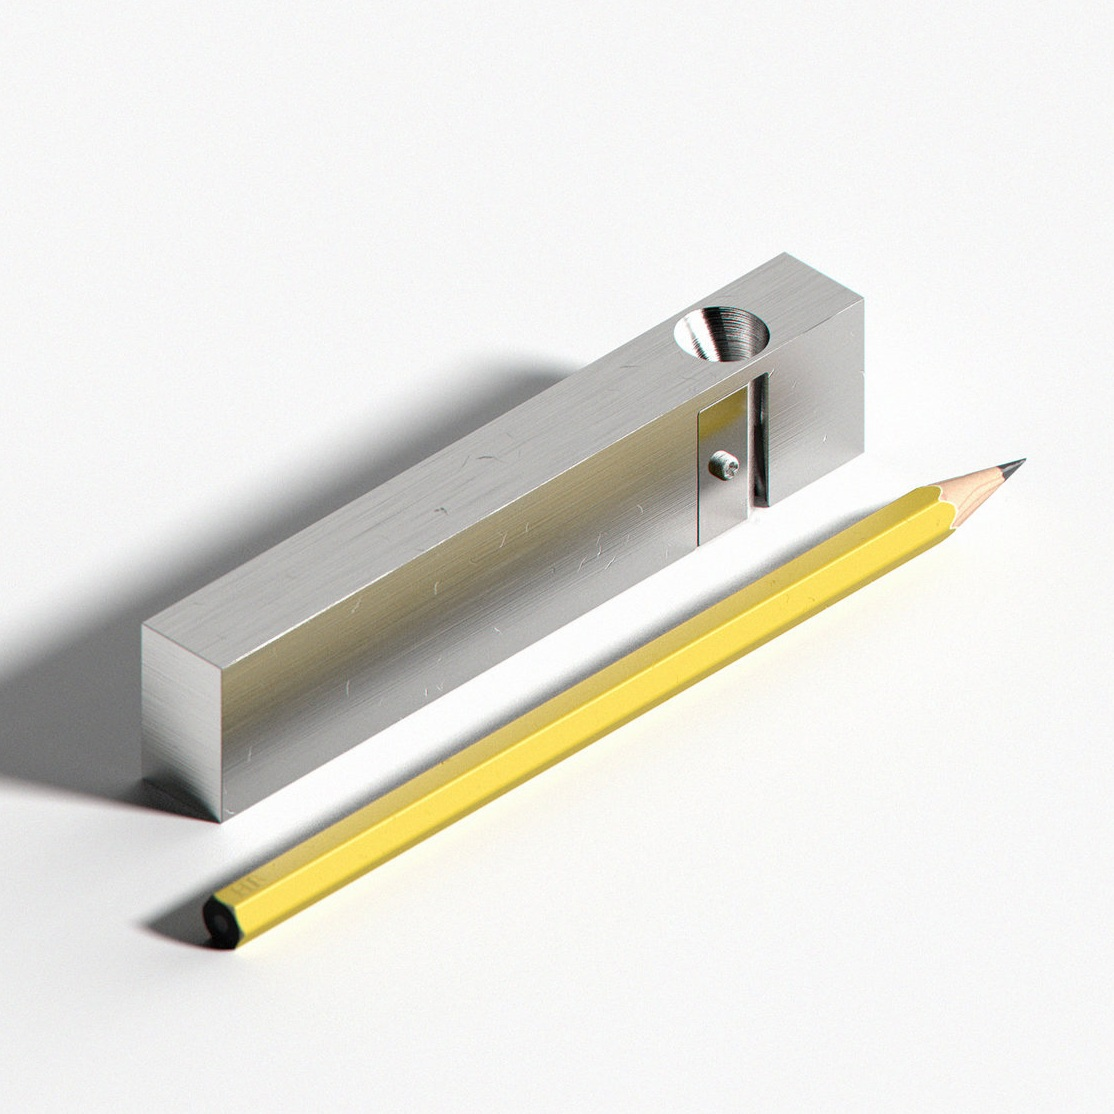 milled steel block pencil sharpener